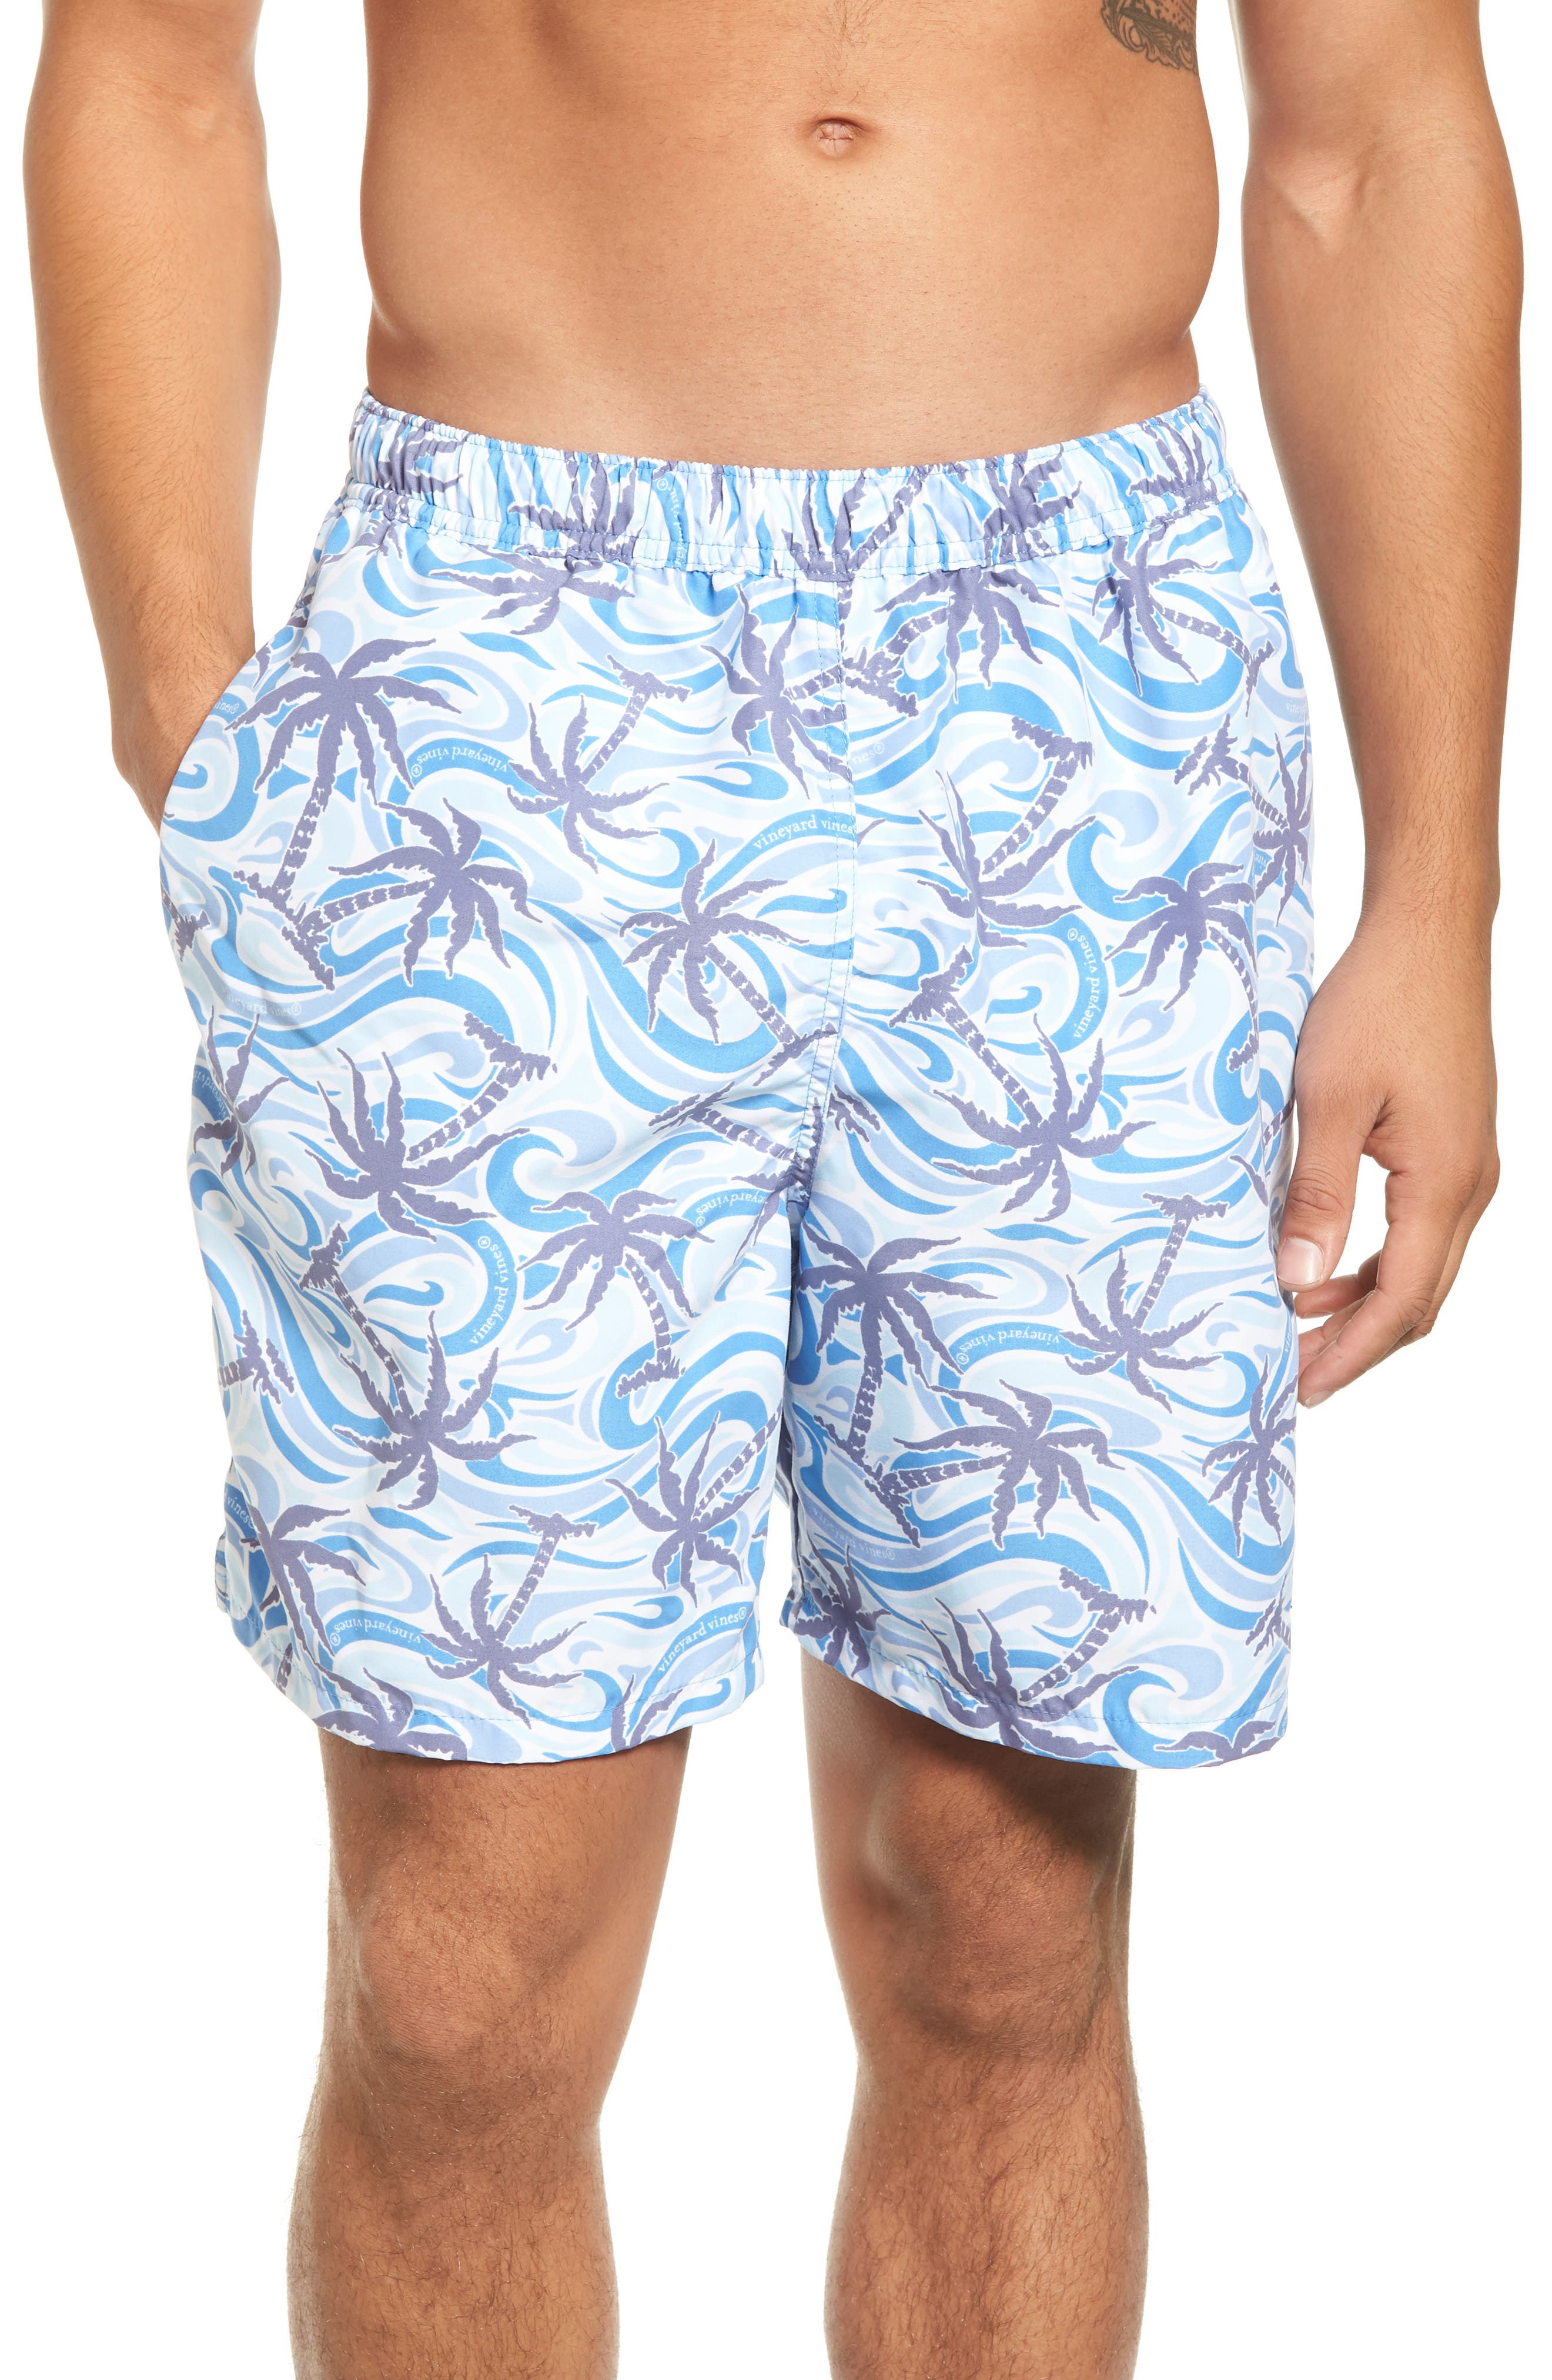 Chappy Wave Palm Tree Swim Trunks,                             Main thumbnail 1, color,                             456